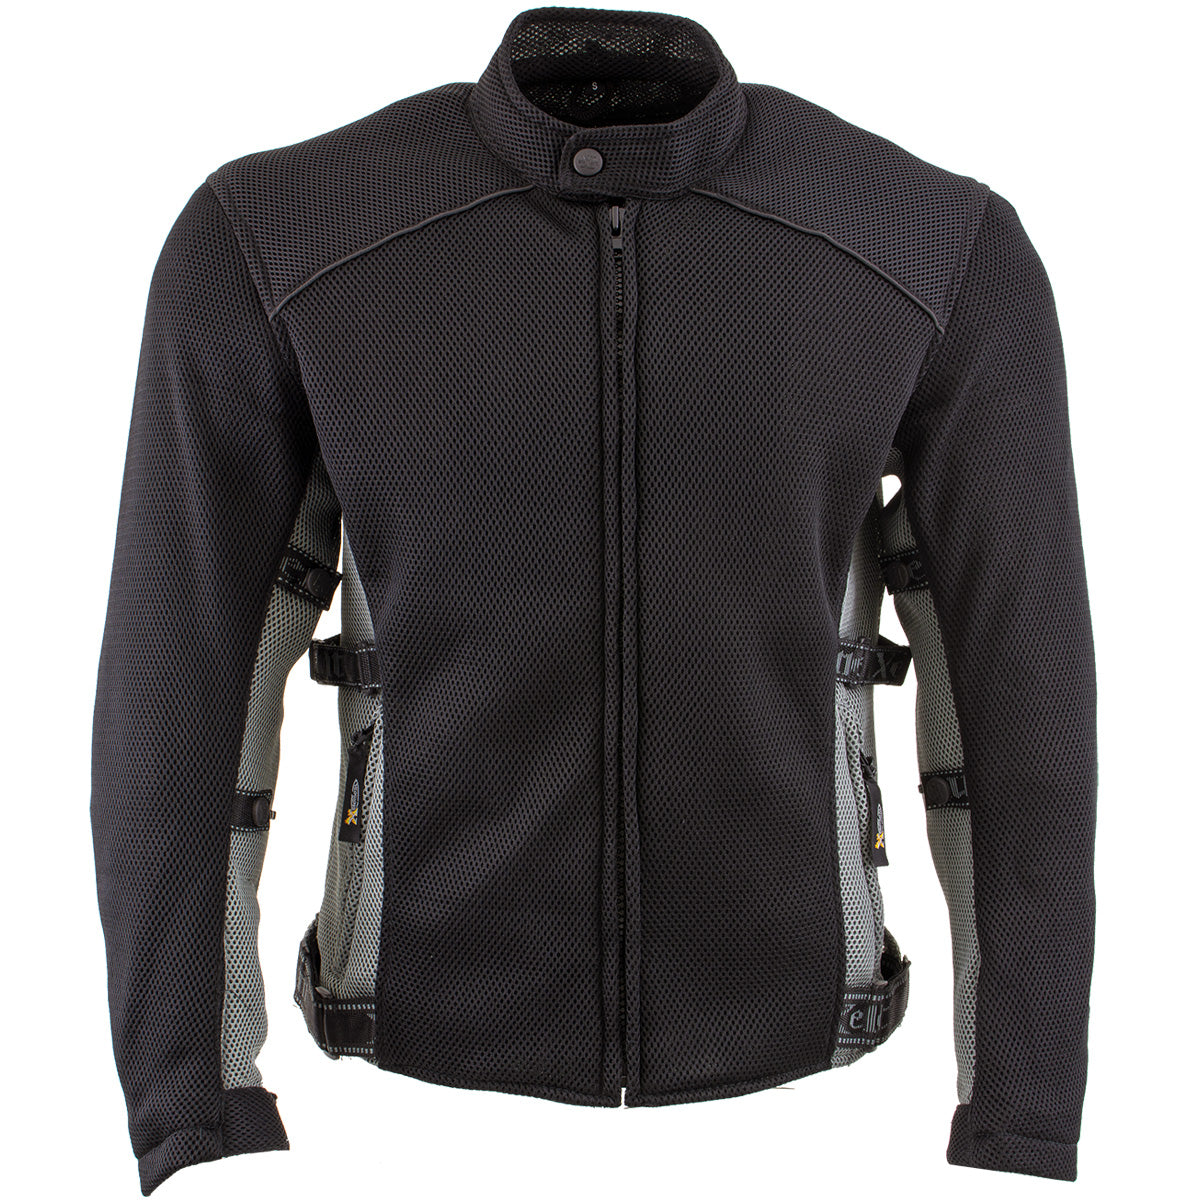 Xelement CF505 Men's Black Advanced Mesh Sports Jacket with X-Armor